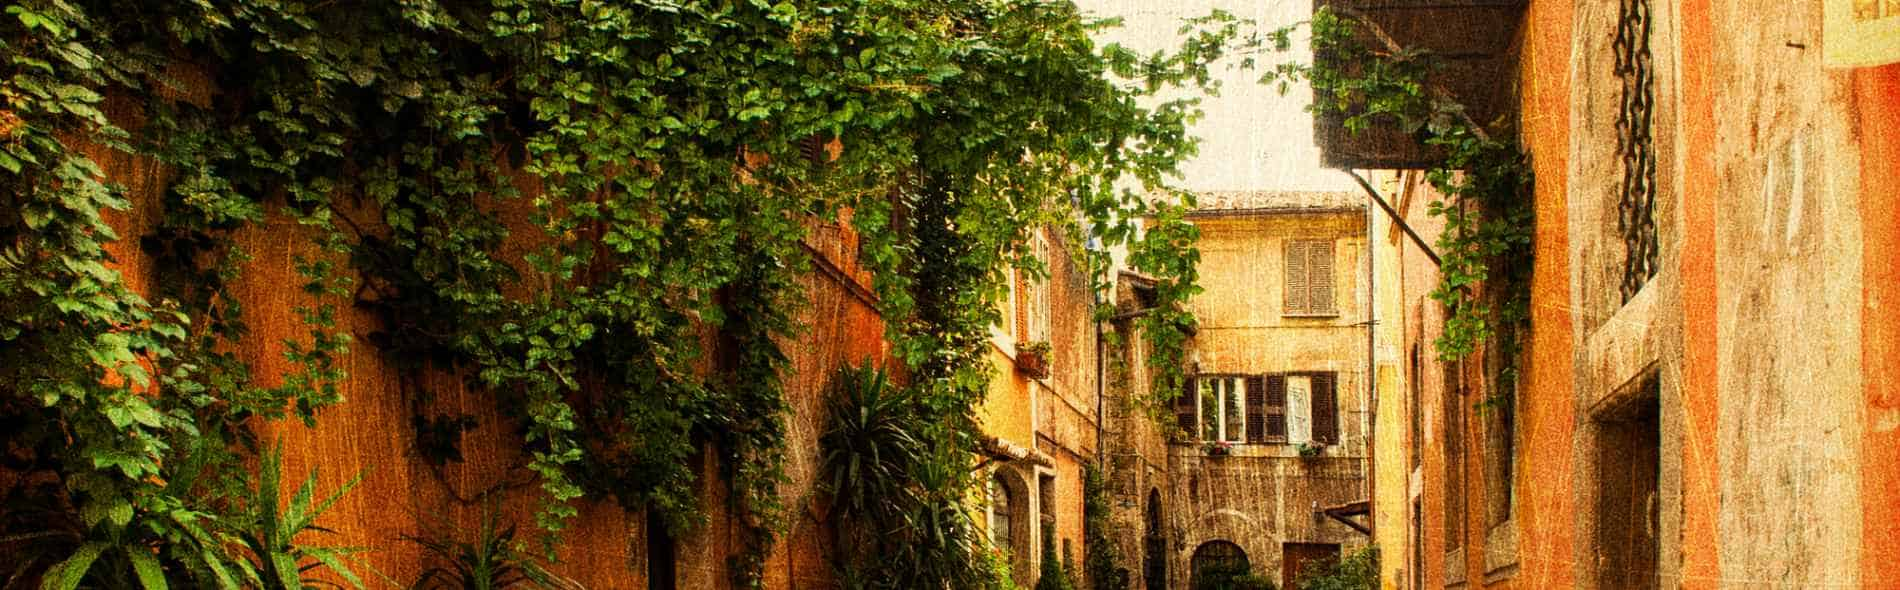 Trastevere corner, expert private tour